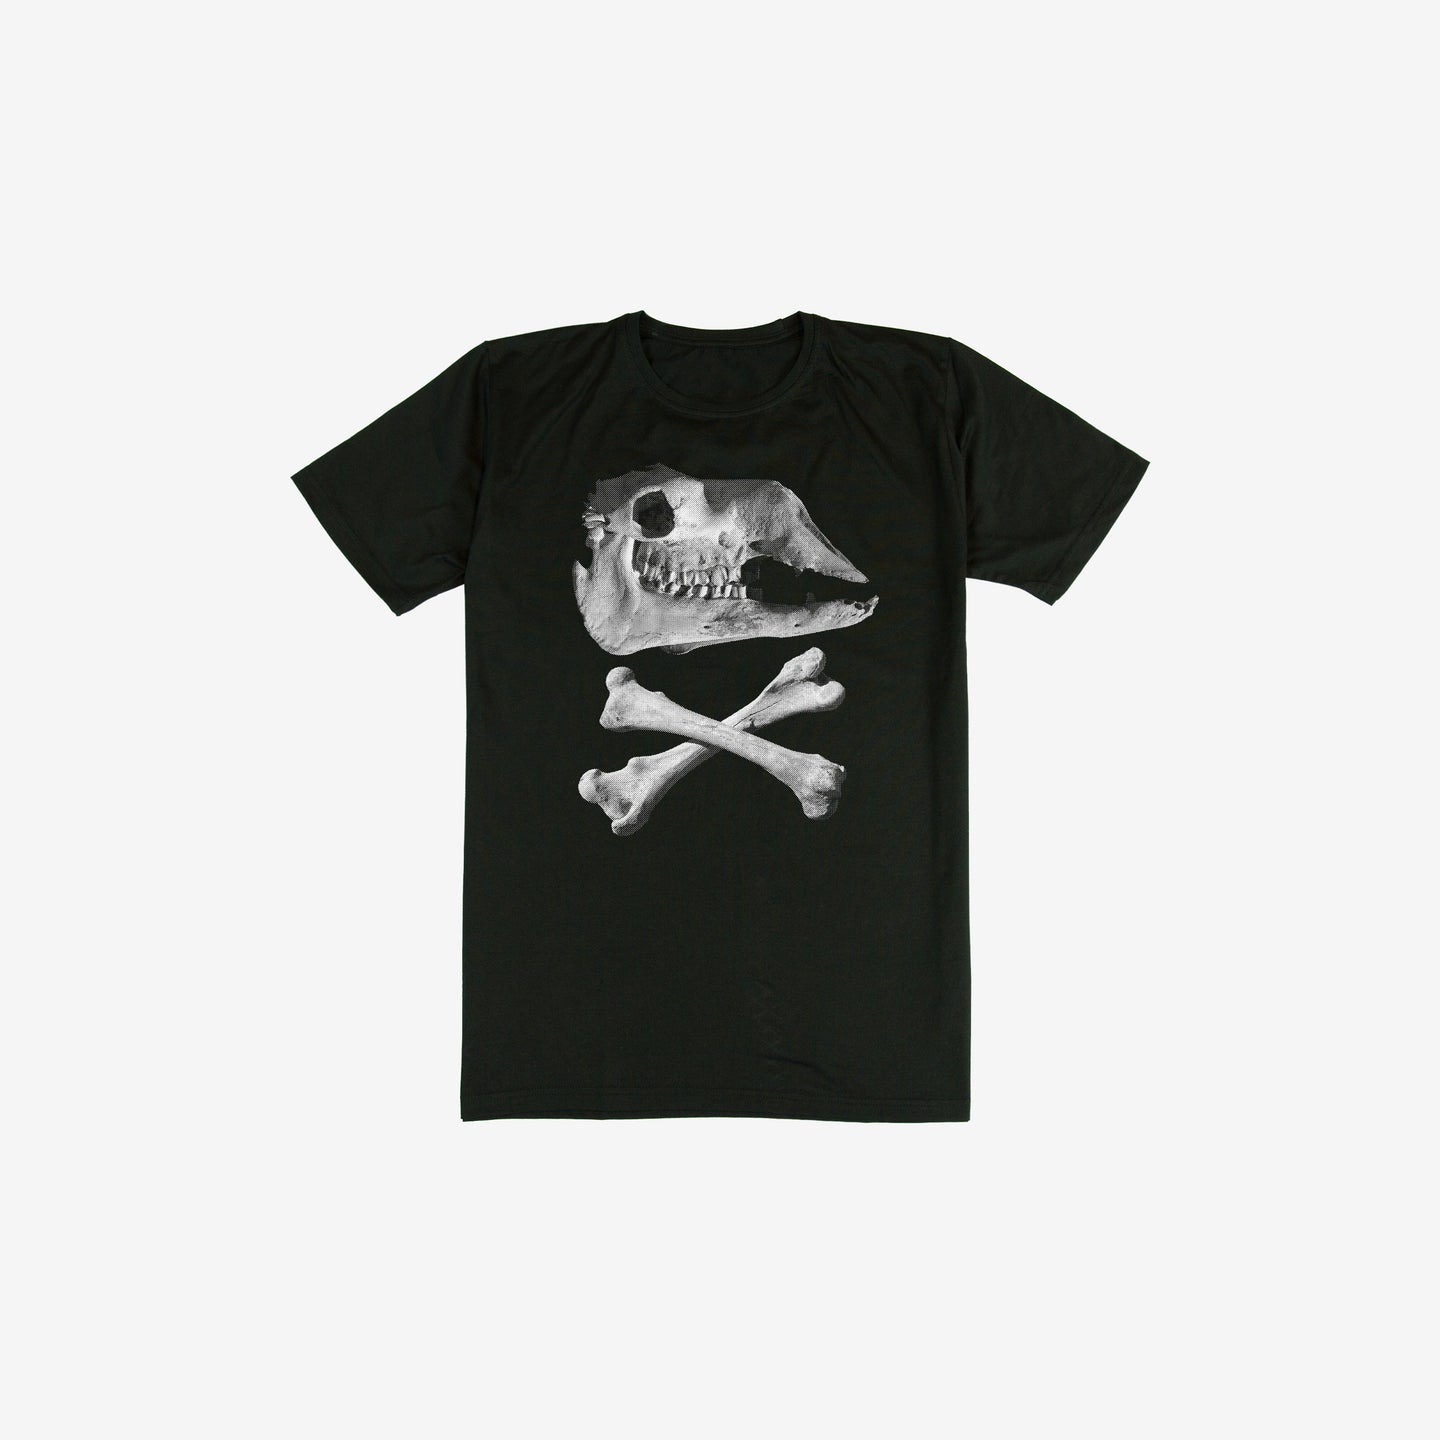 Camel Skull T-Shirt (Kids Sizes)